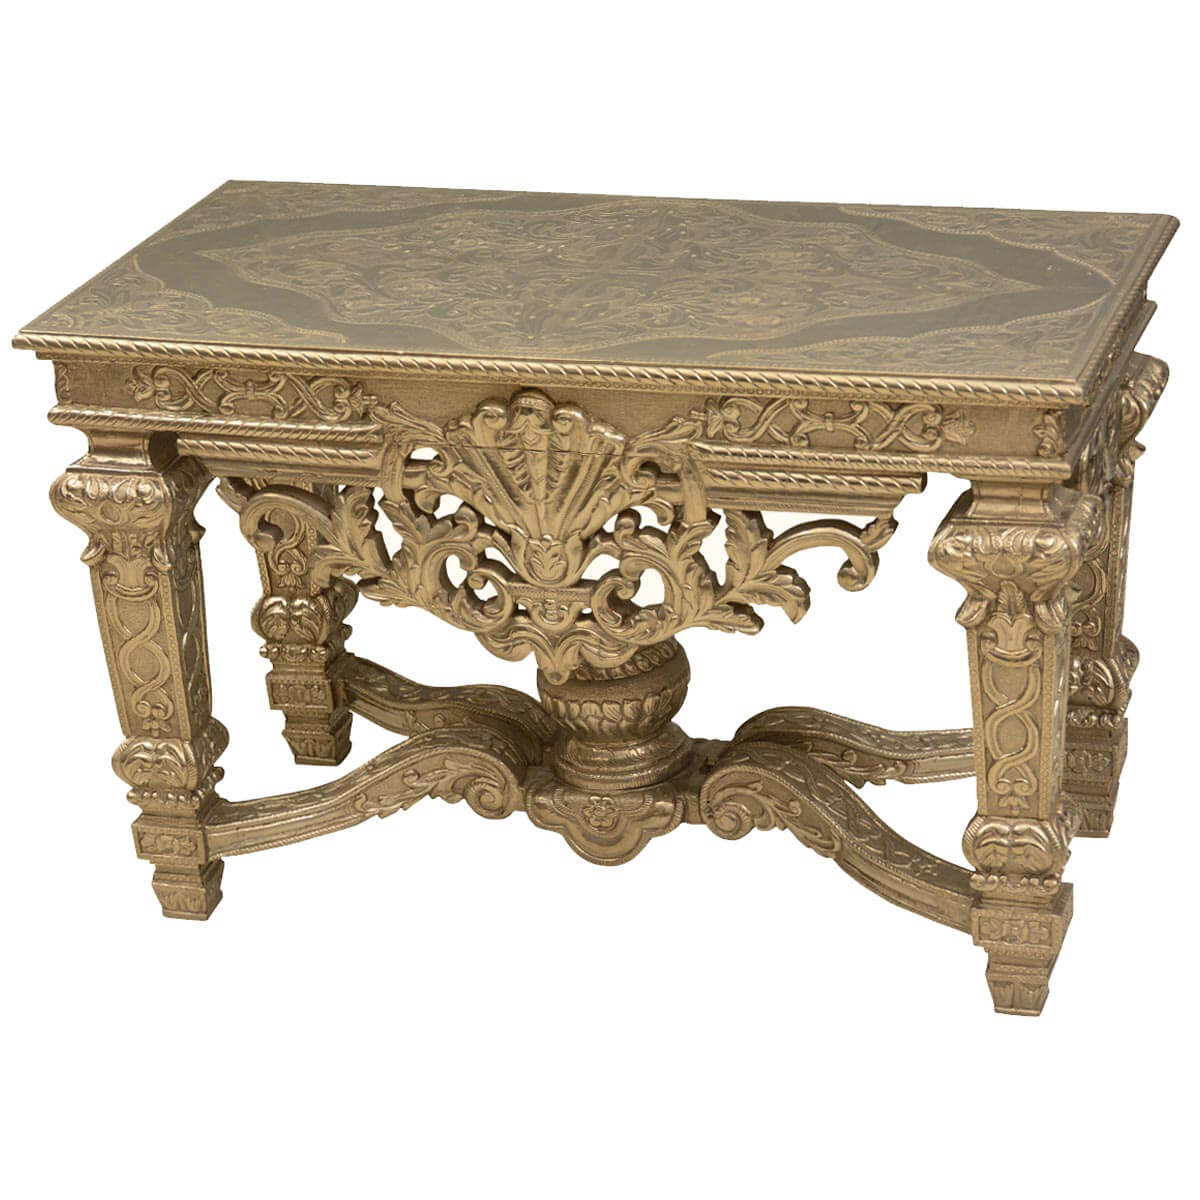 French baroque teak wood silver metal ornate 48 console table - Ornate hall table ...